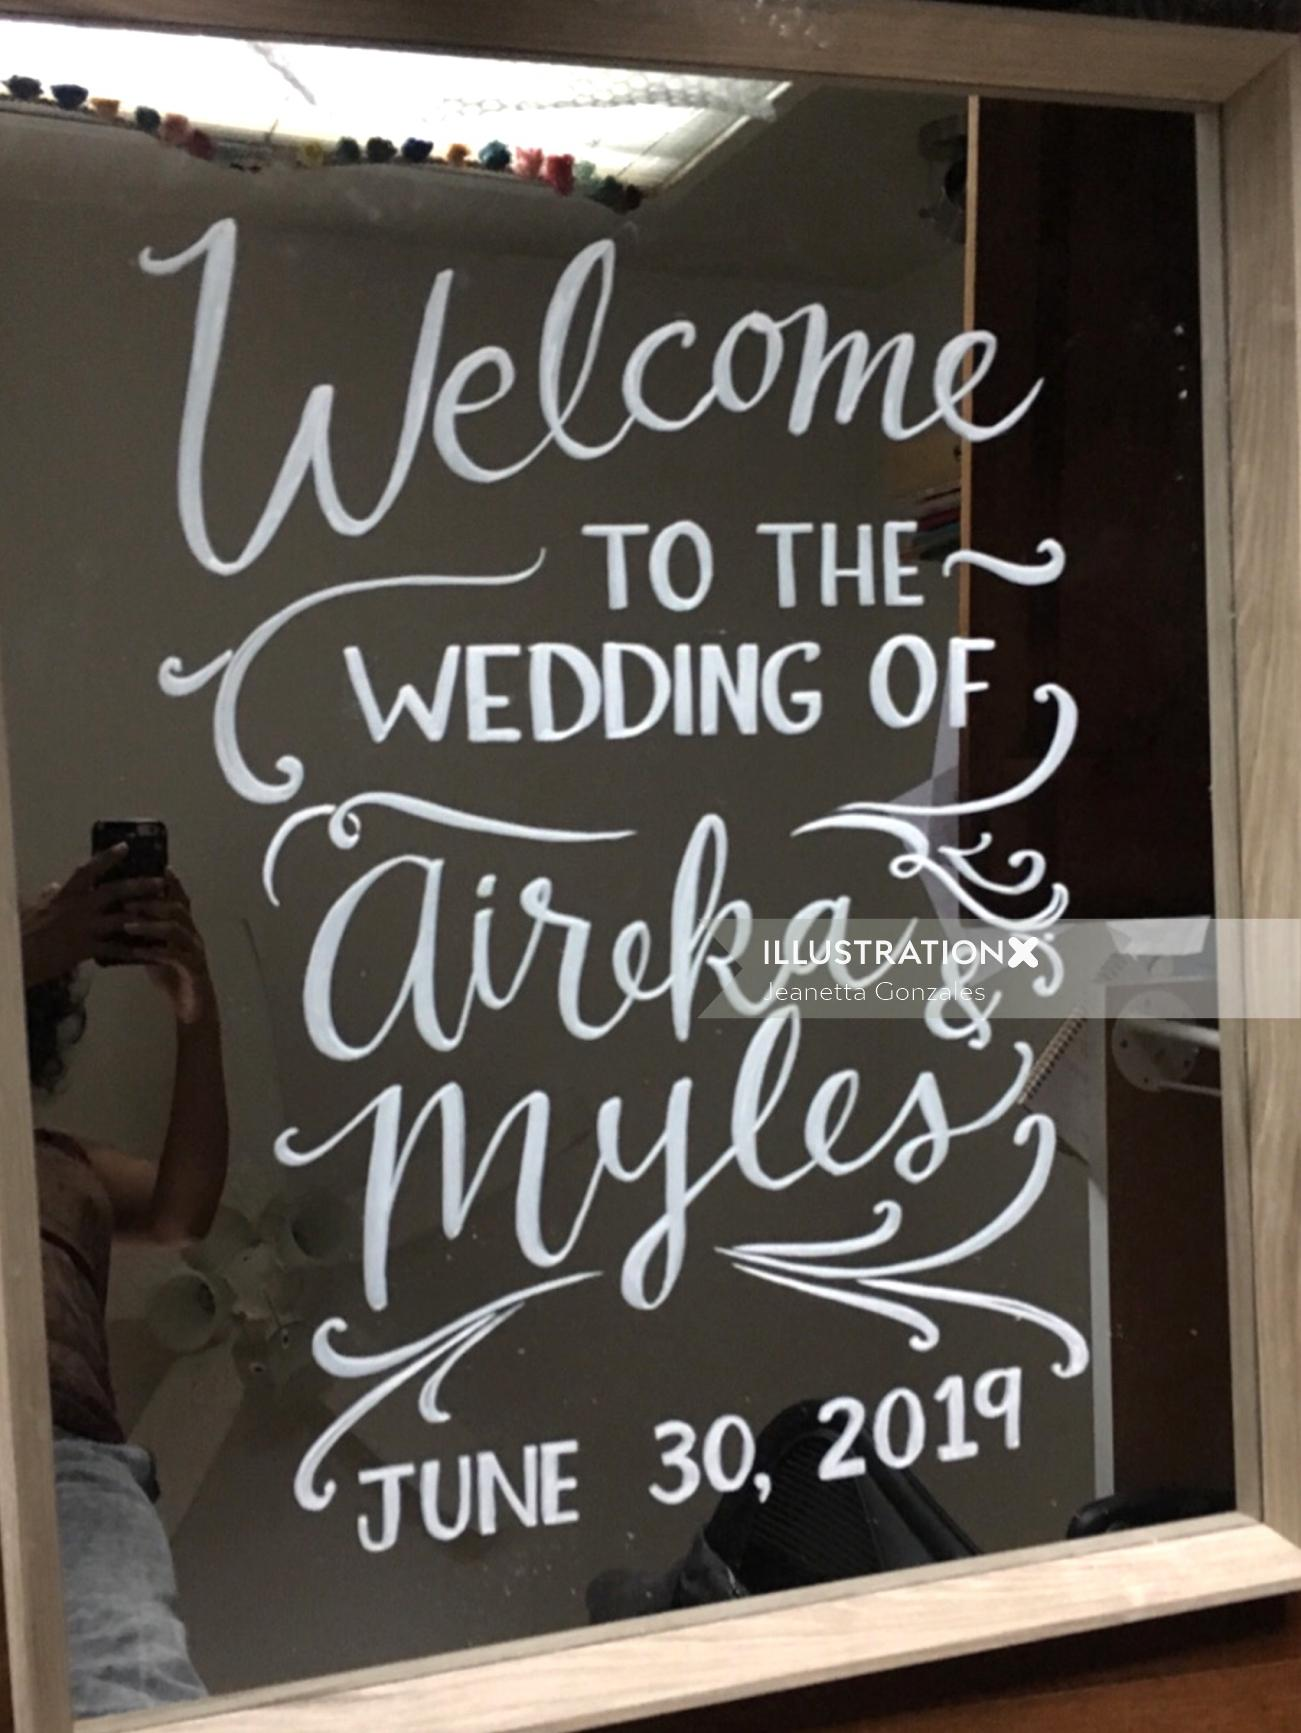 Calligraphy of welcome to the wedding